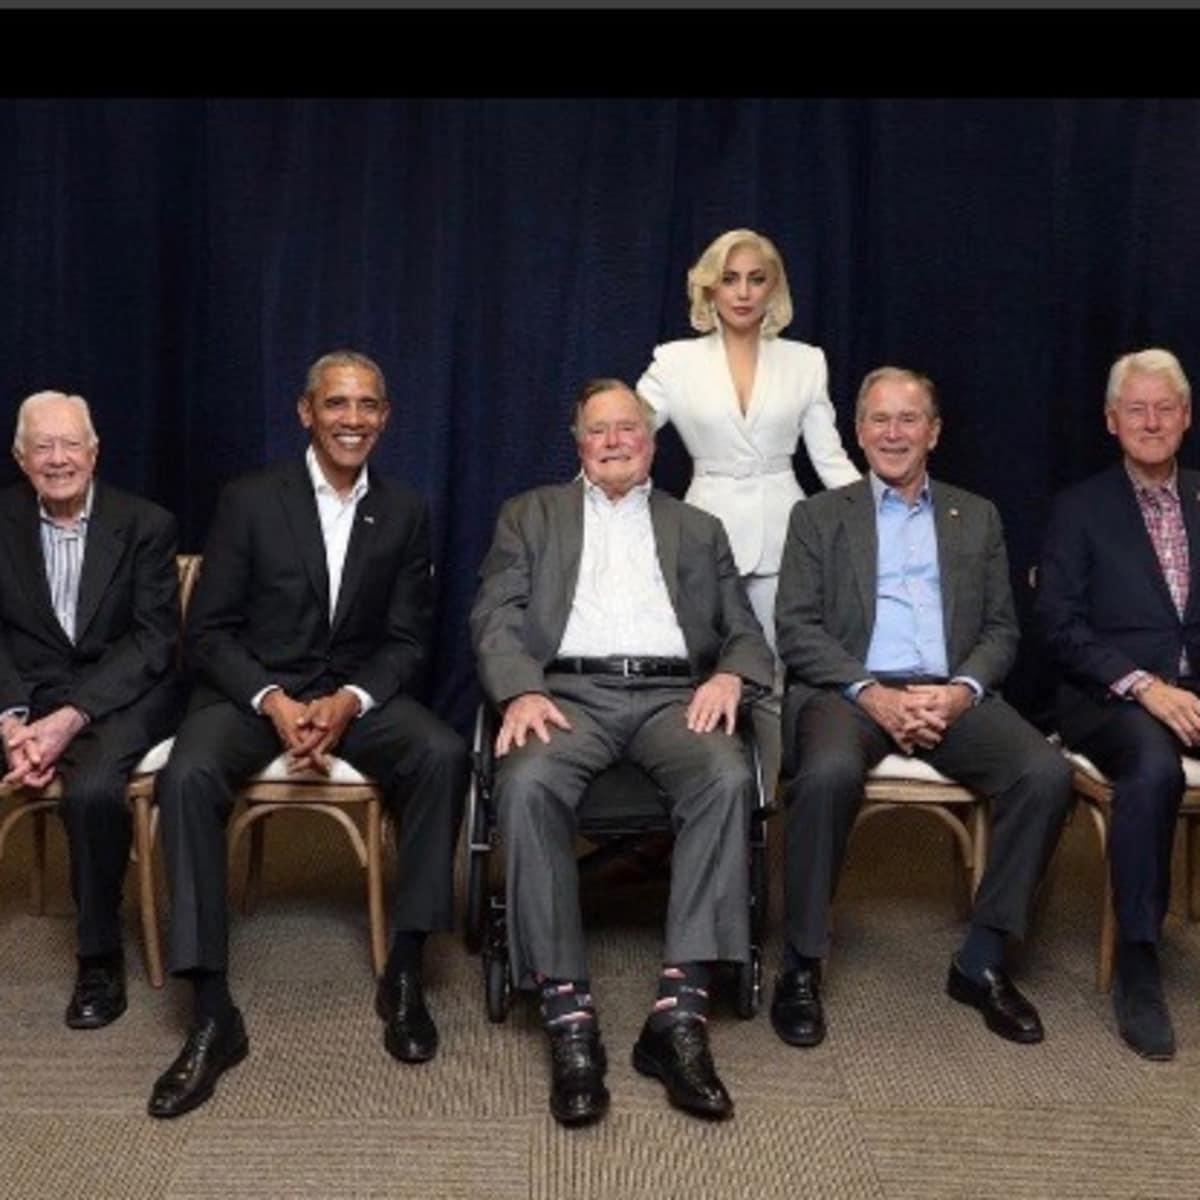 Lady Gaga poses with former presidents Jimmy Carter, Barack Obama, George HW Bush, George W Bush, and BIll Clinton at hurricane relief fundraiser